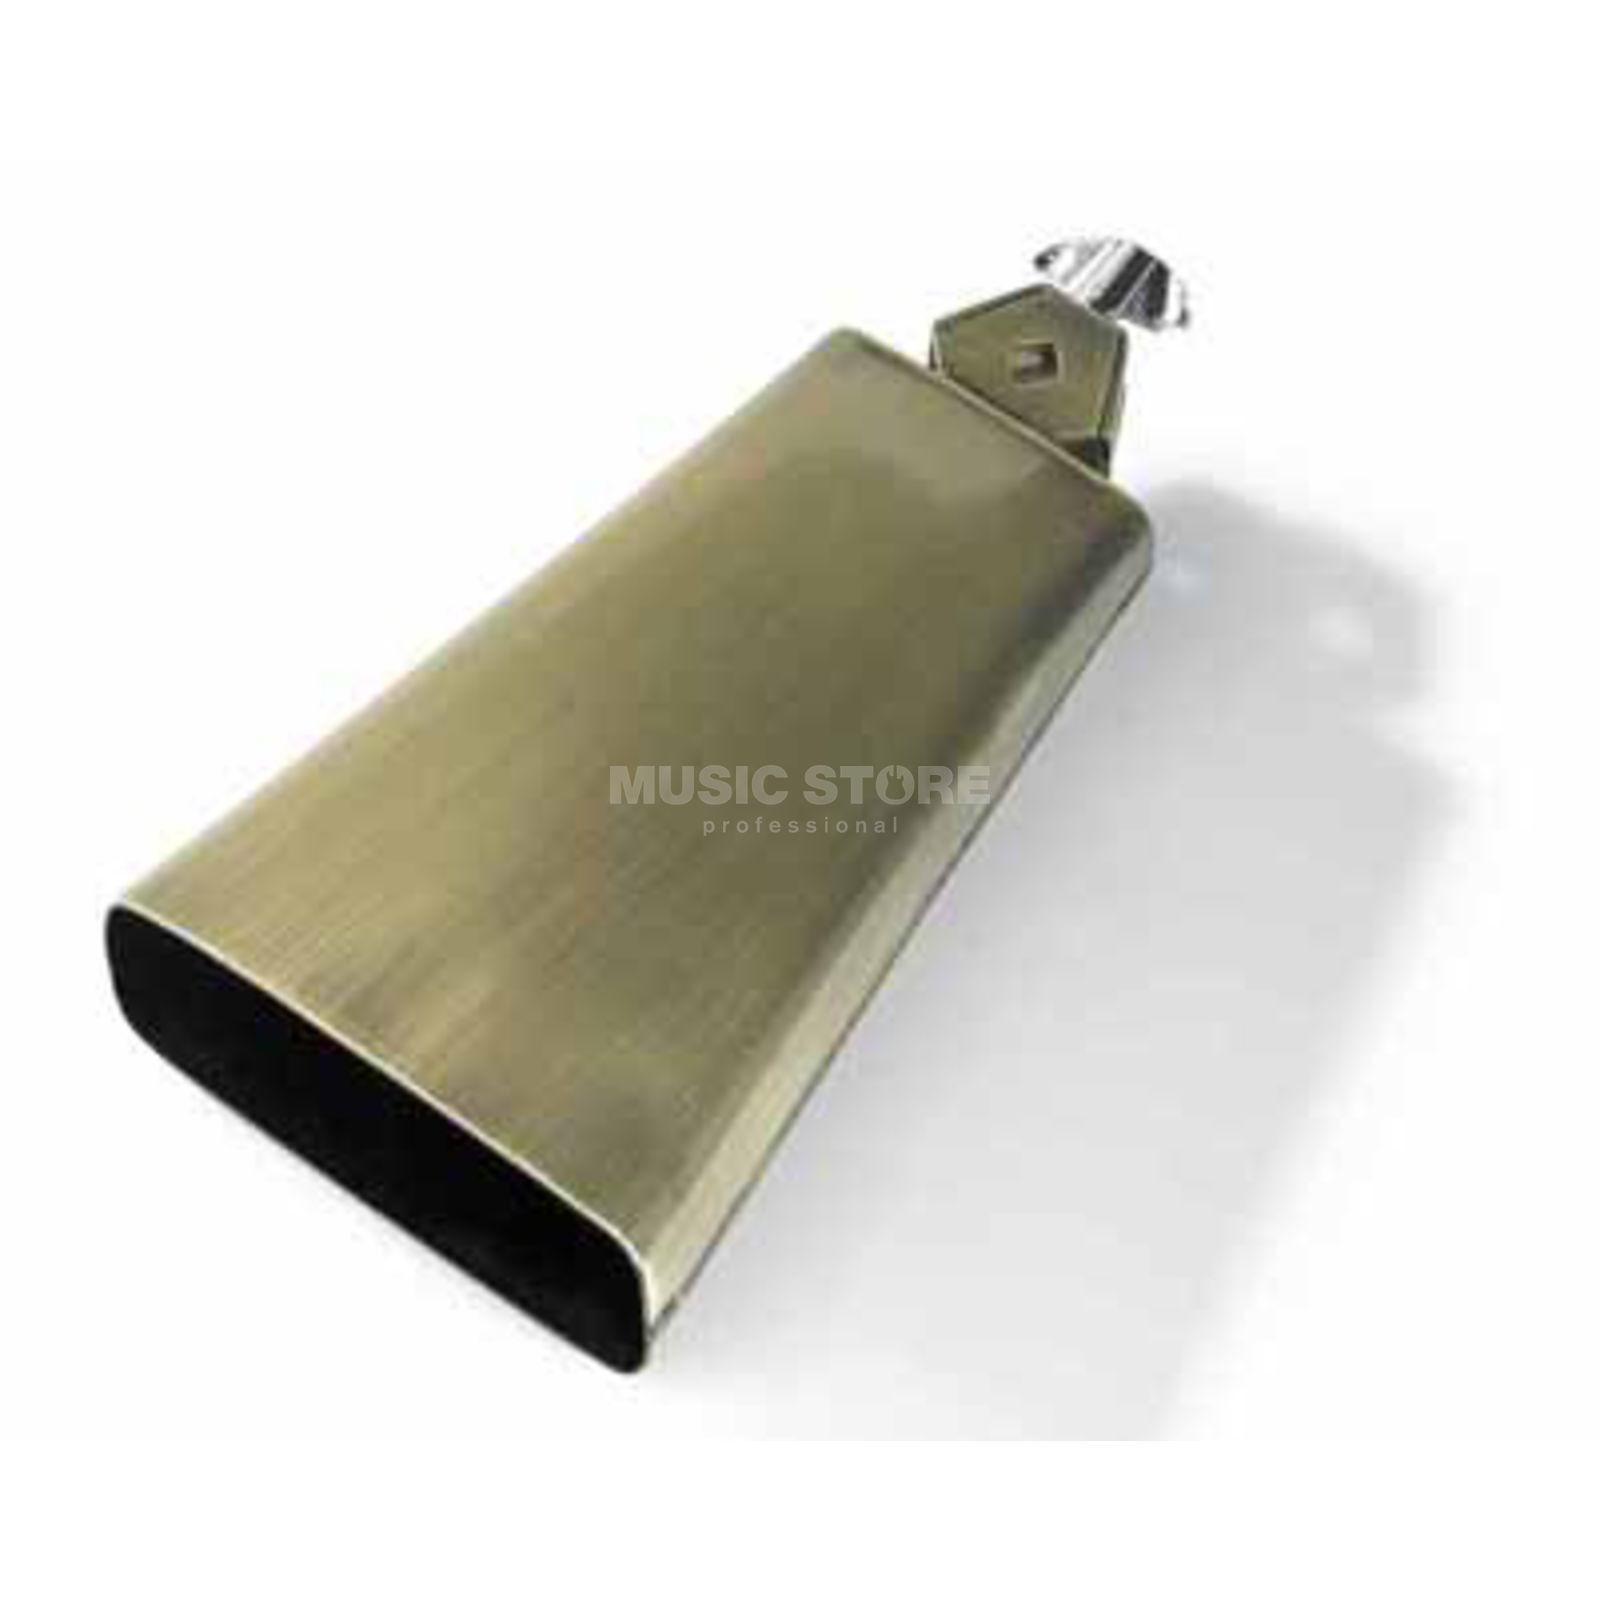 "Sonor MB 8 Mambo Cowbell 8"" Brass Produktbild"